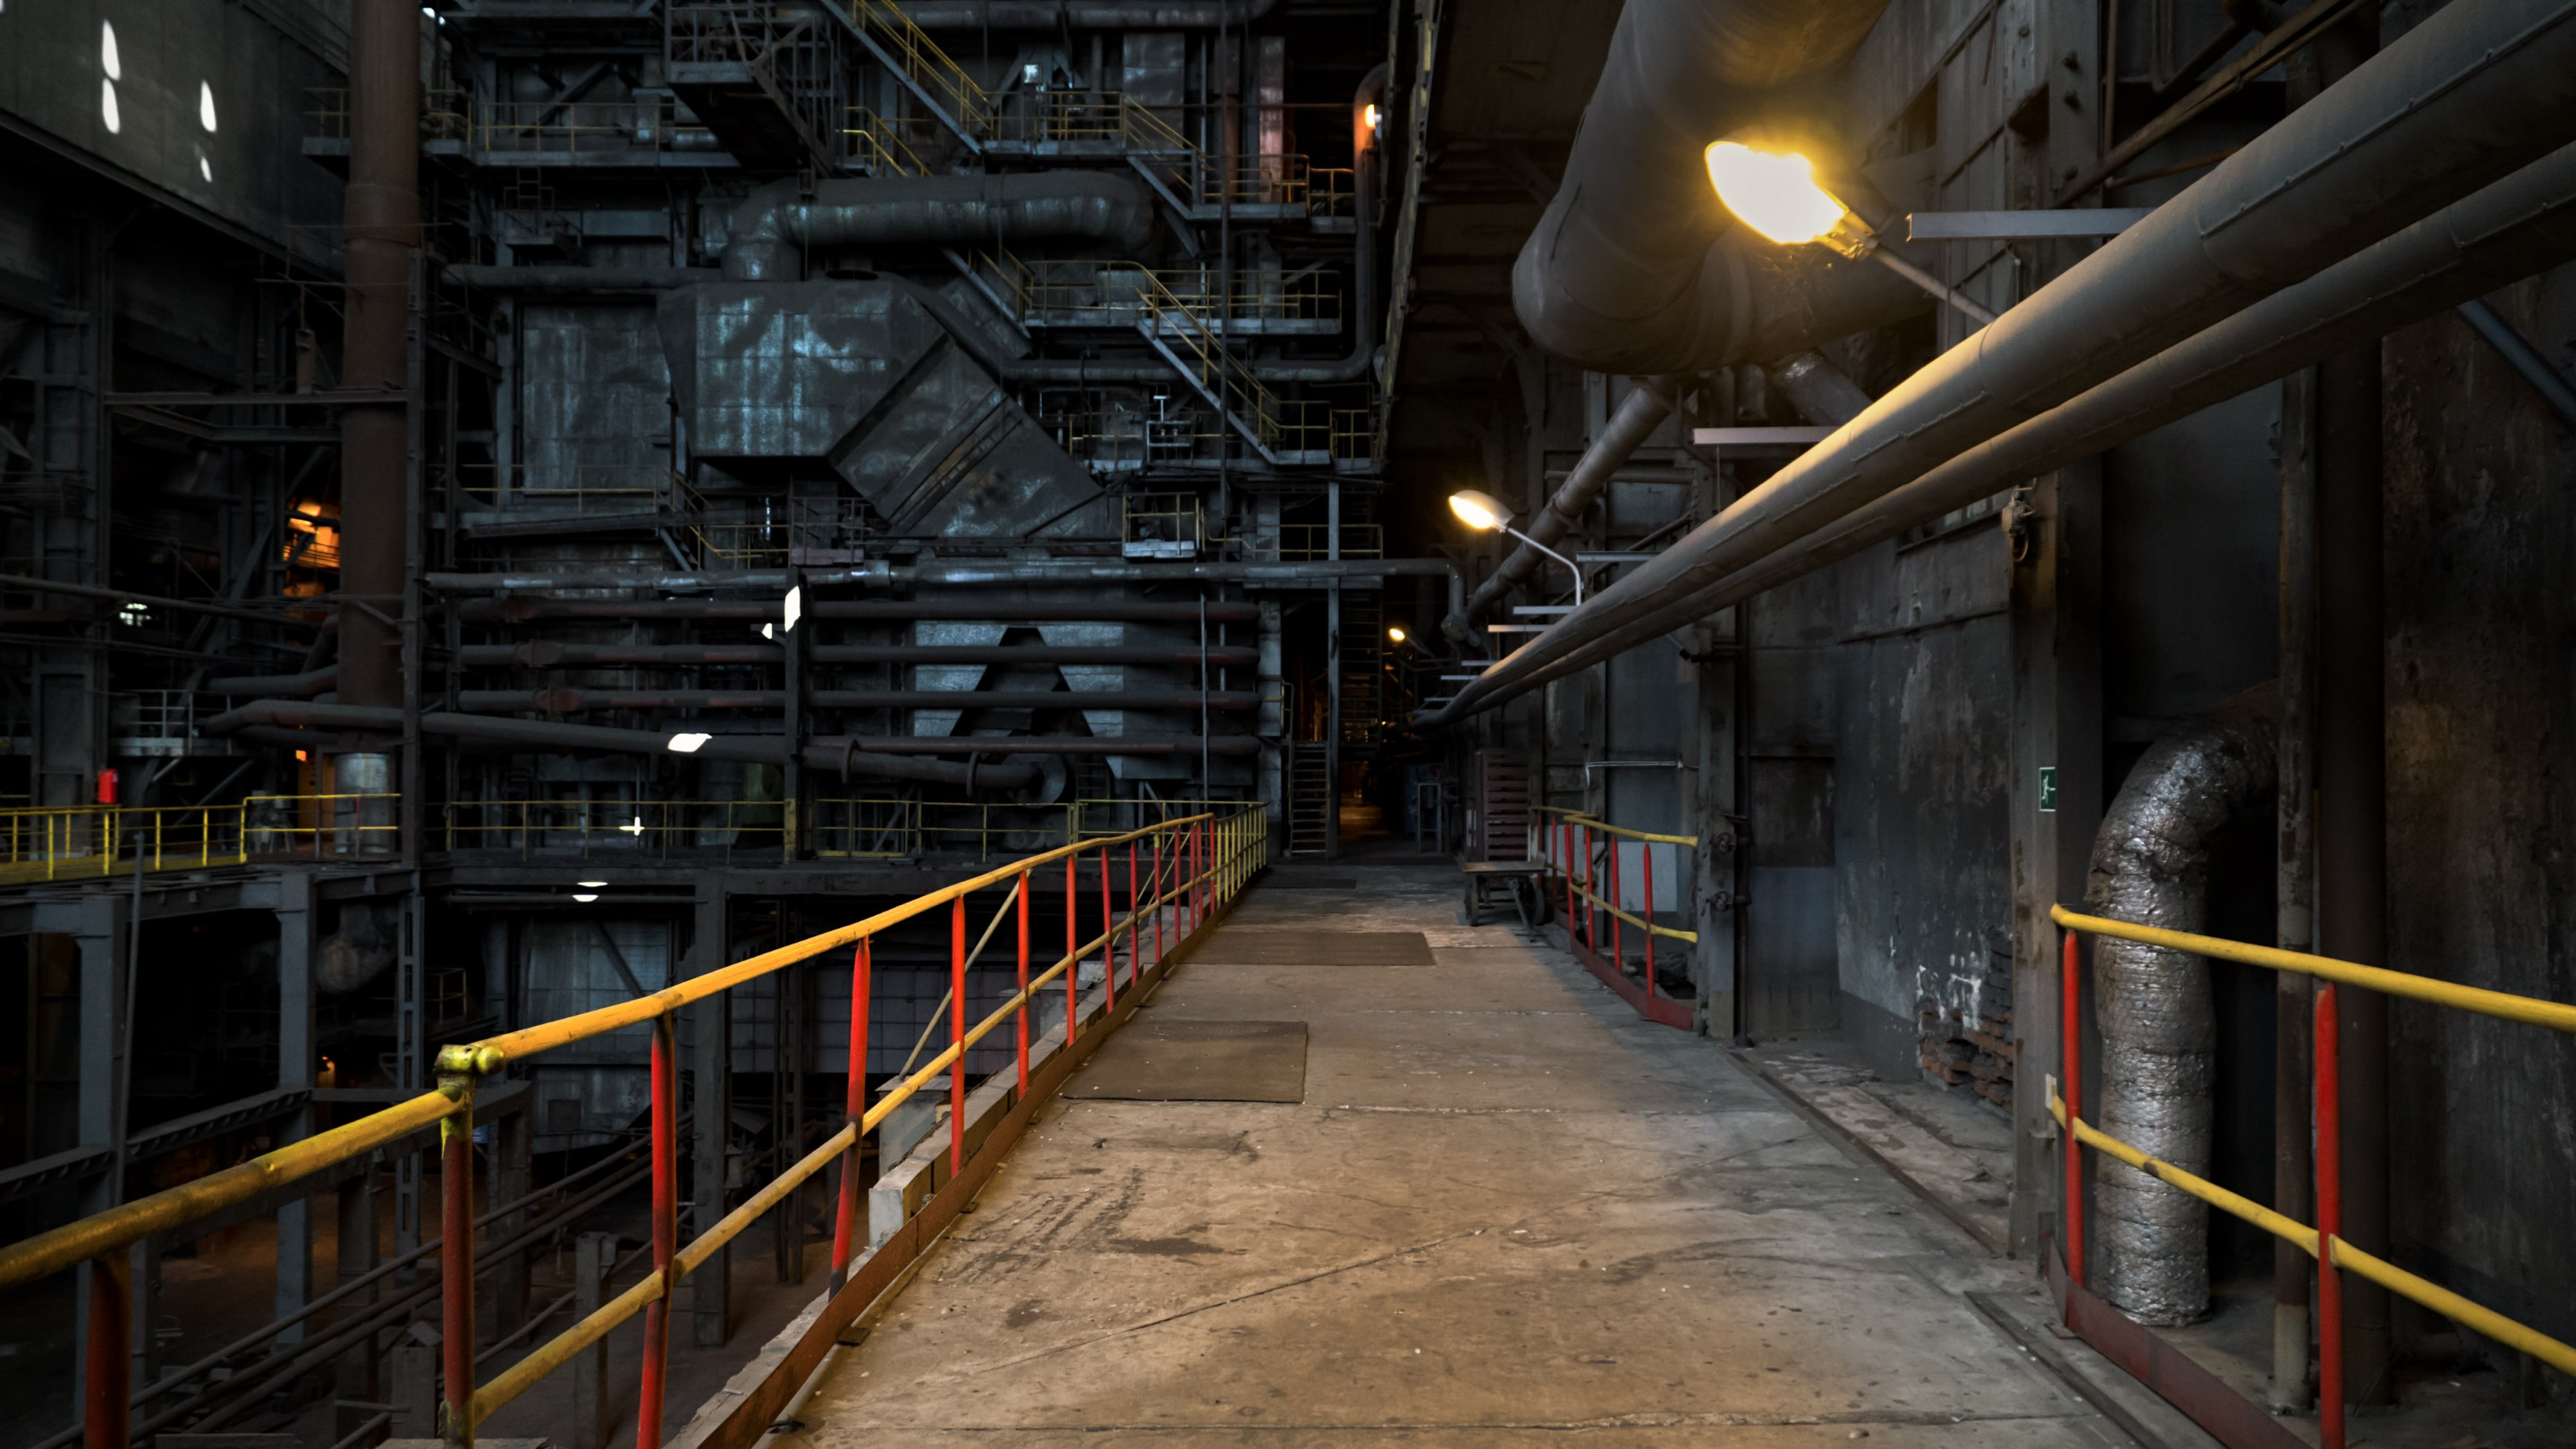 The inside of a power station wallpaper 2880x1620